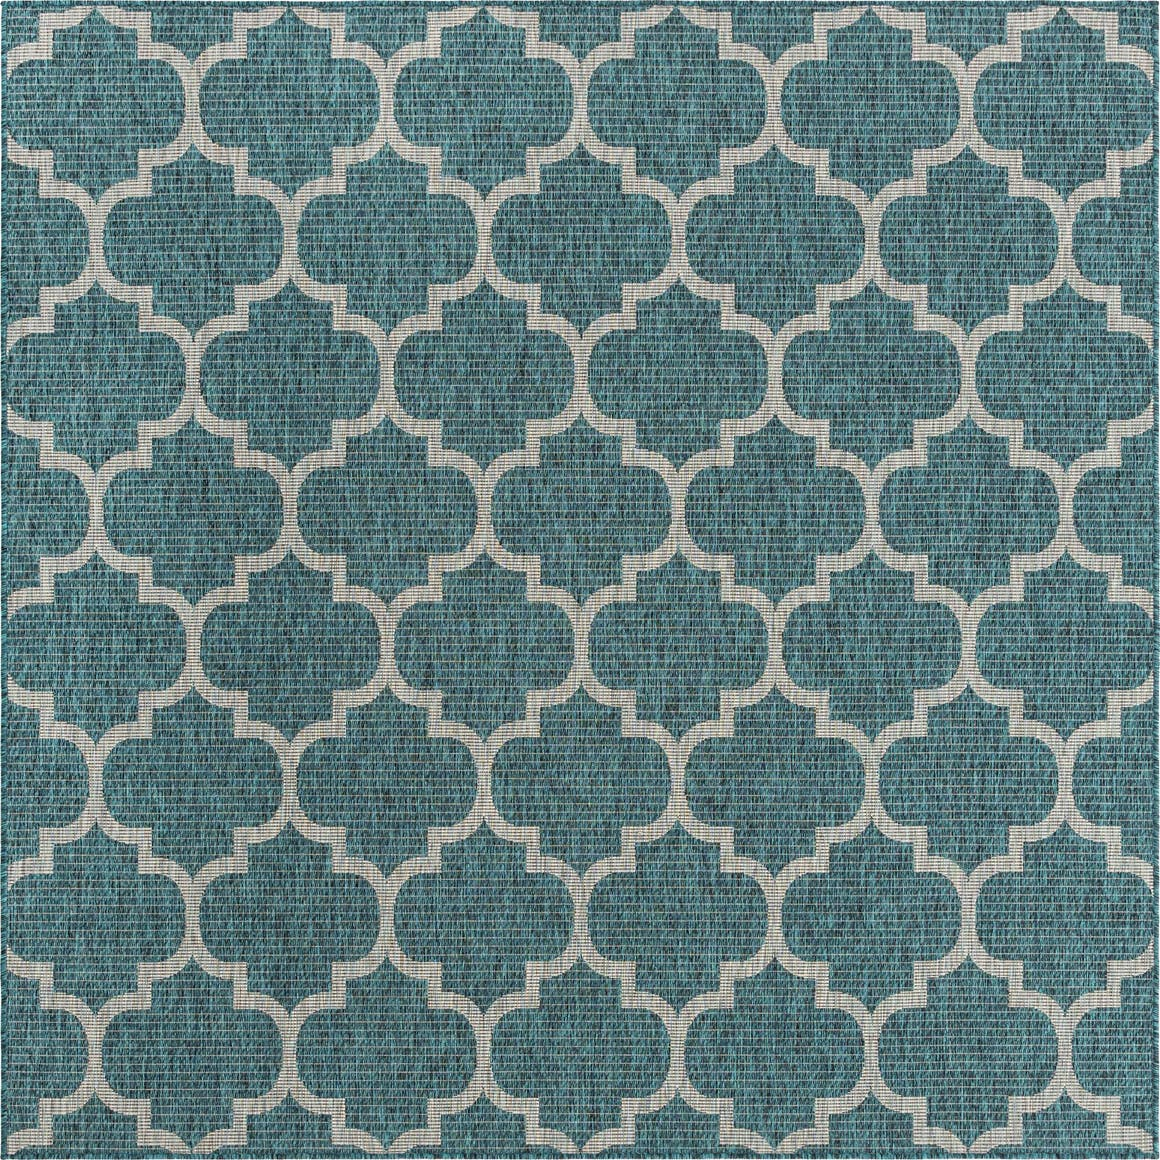 8' x 8' Outdoor Trellis Square Rug main image